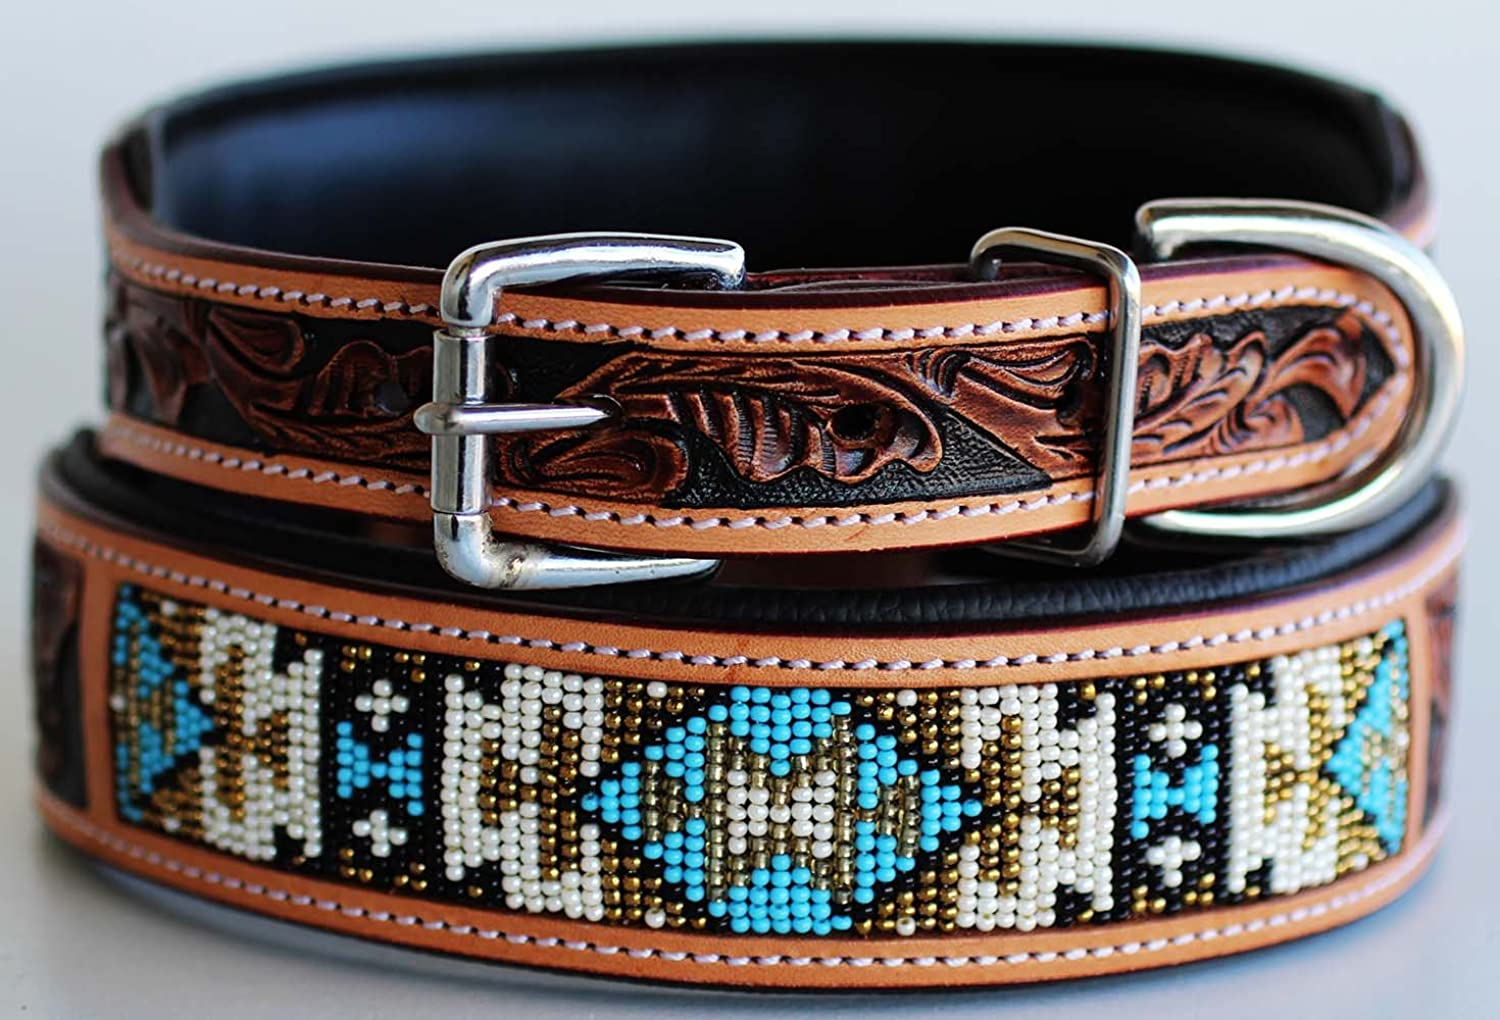 Dog Puppy Collar Cow Leather Adjustable Padded Canine 6063